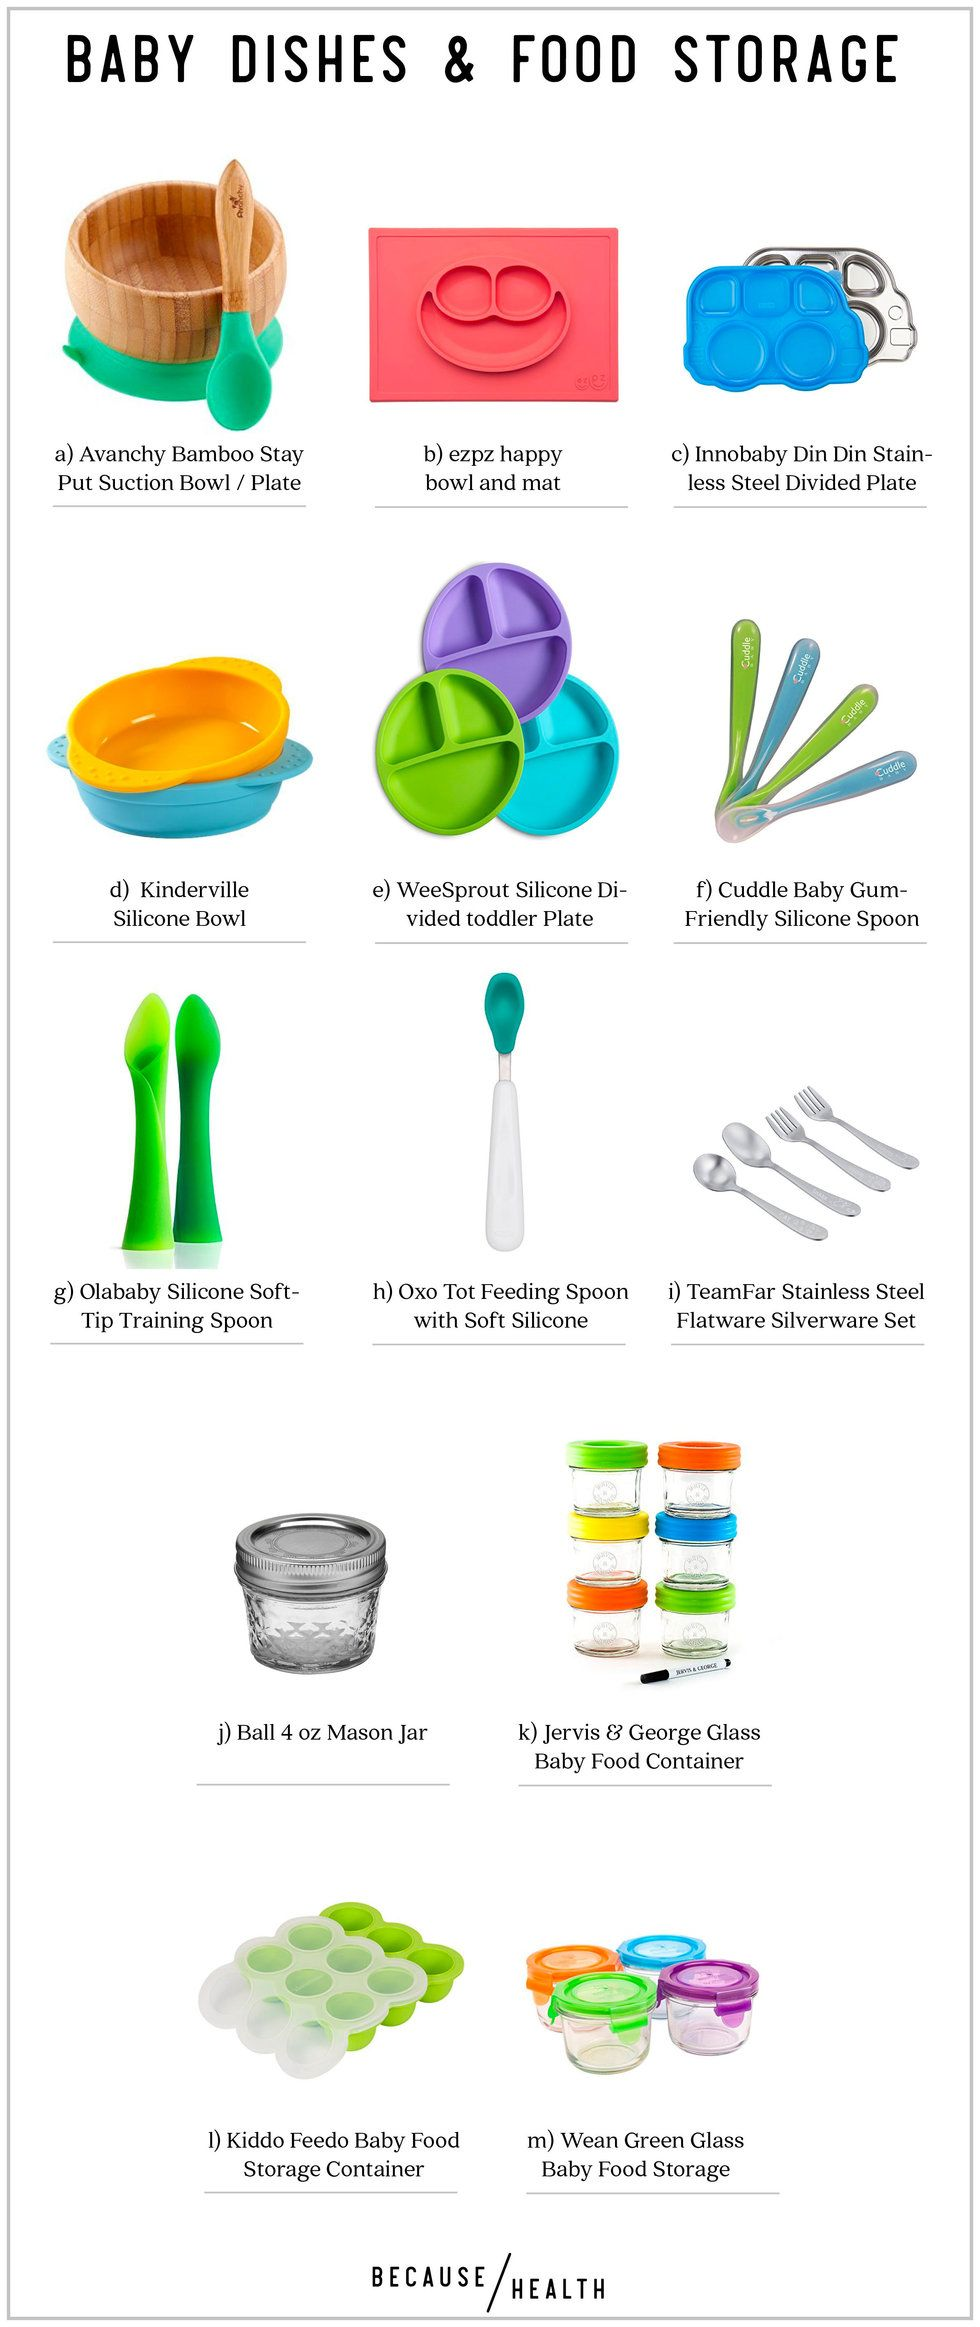 Roundup of Plastic Free Baby Dishes and Food Storage